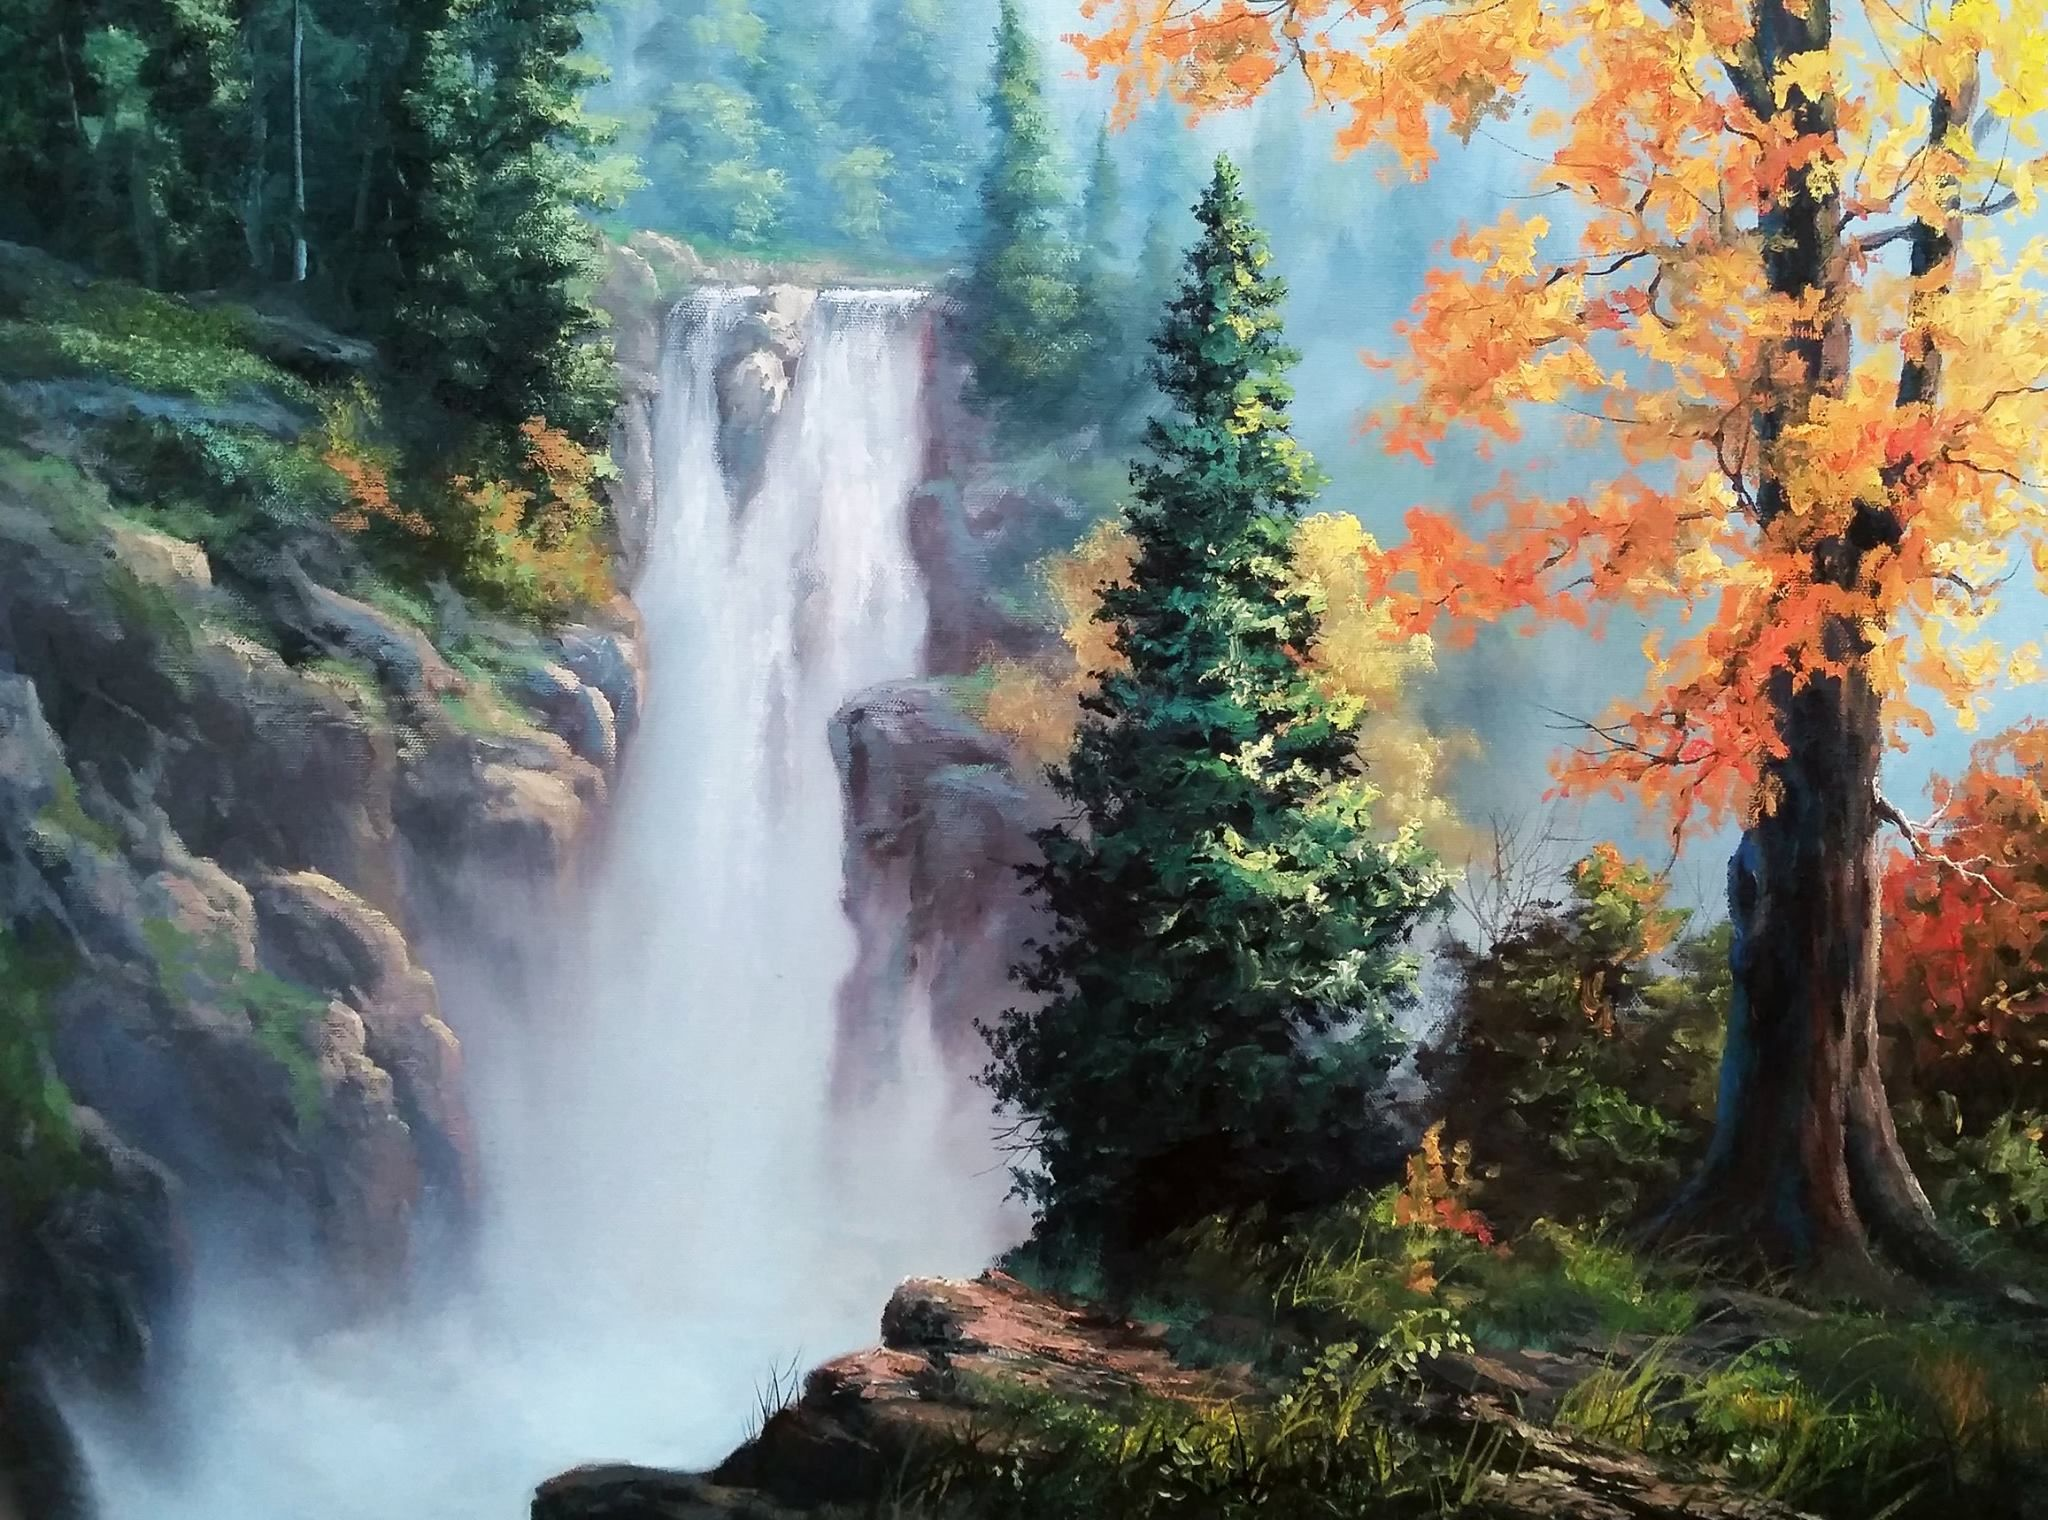 Rushing waterfall by kevin hill check out my youtube for Oil or acrylic